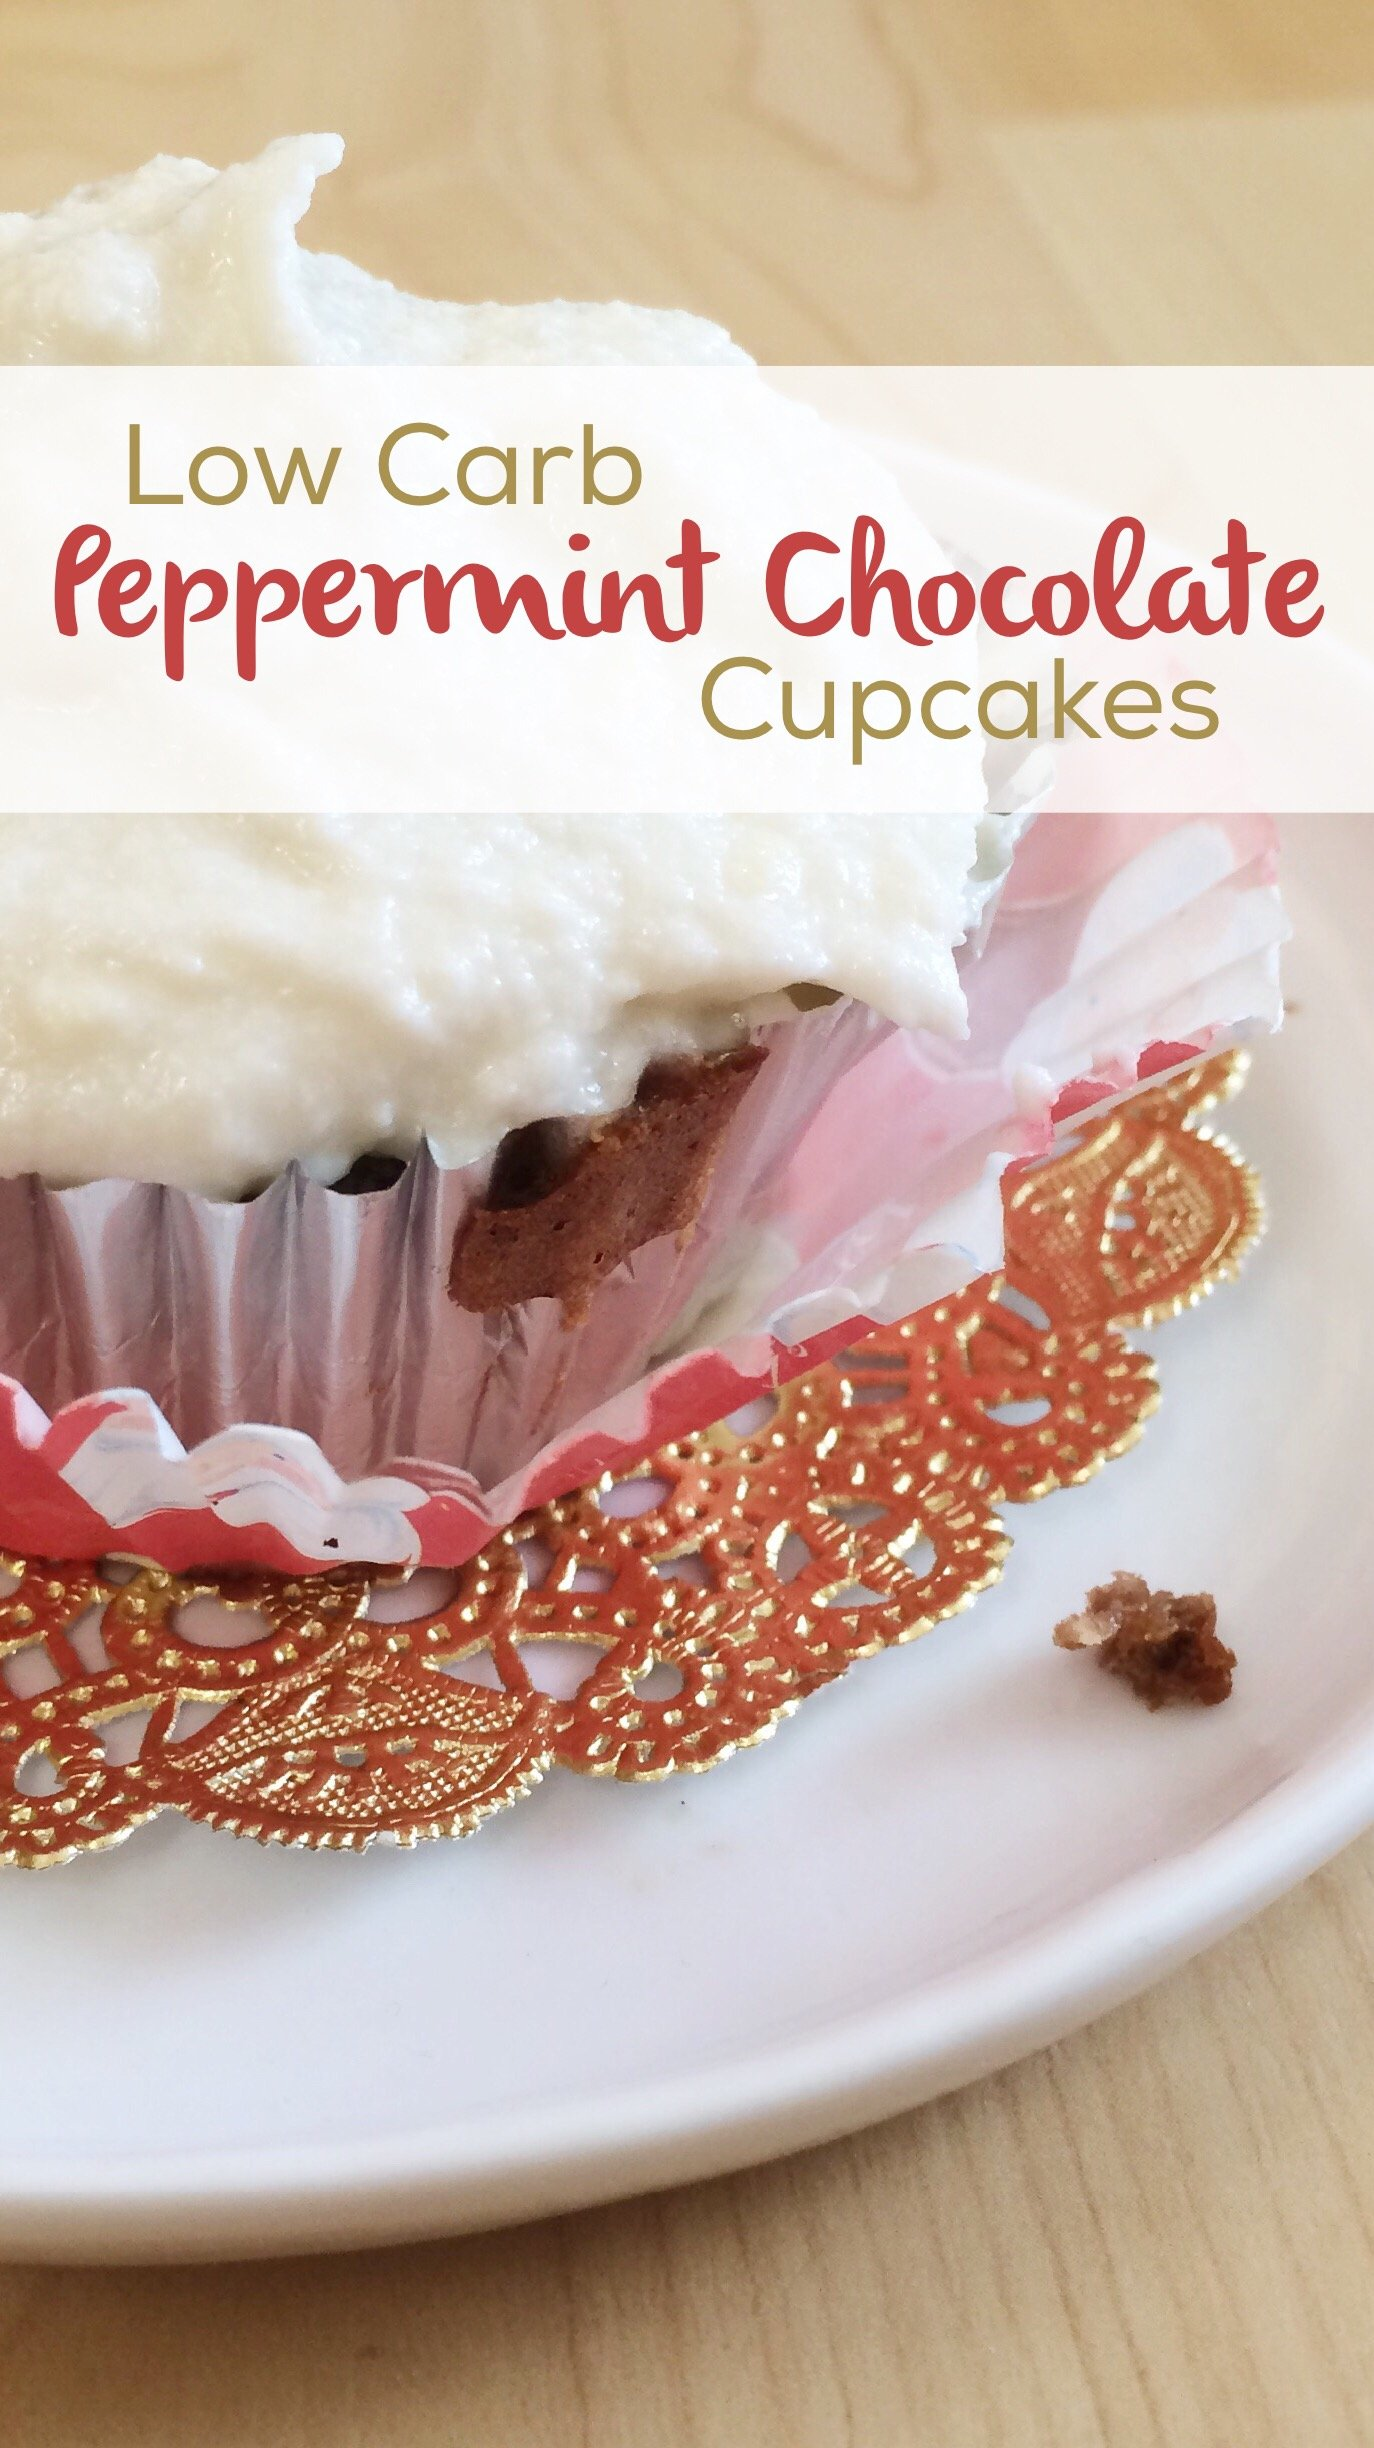 Low Carb Peppermint Chocolate Cupcakes